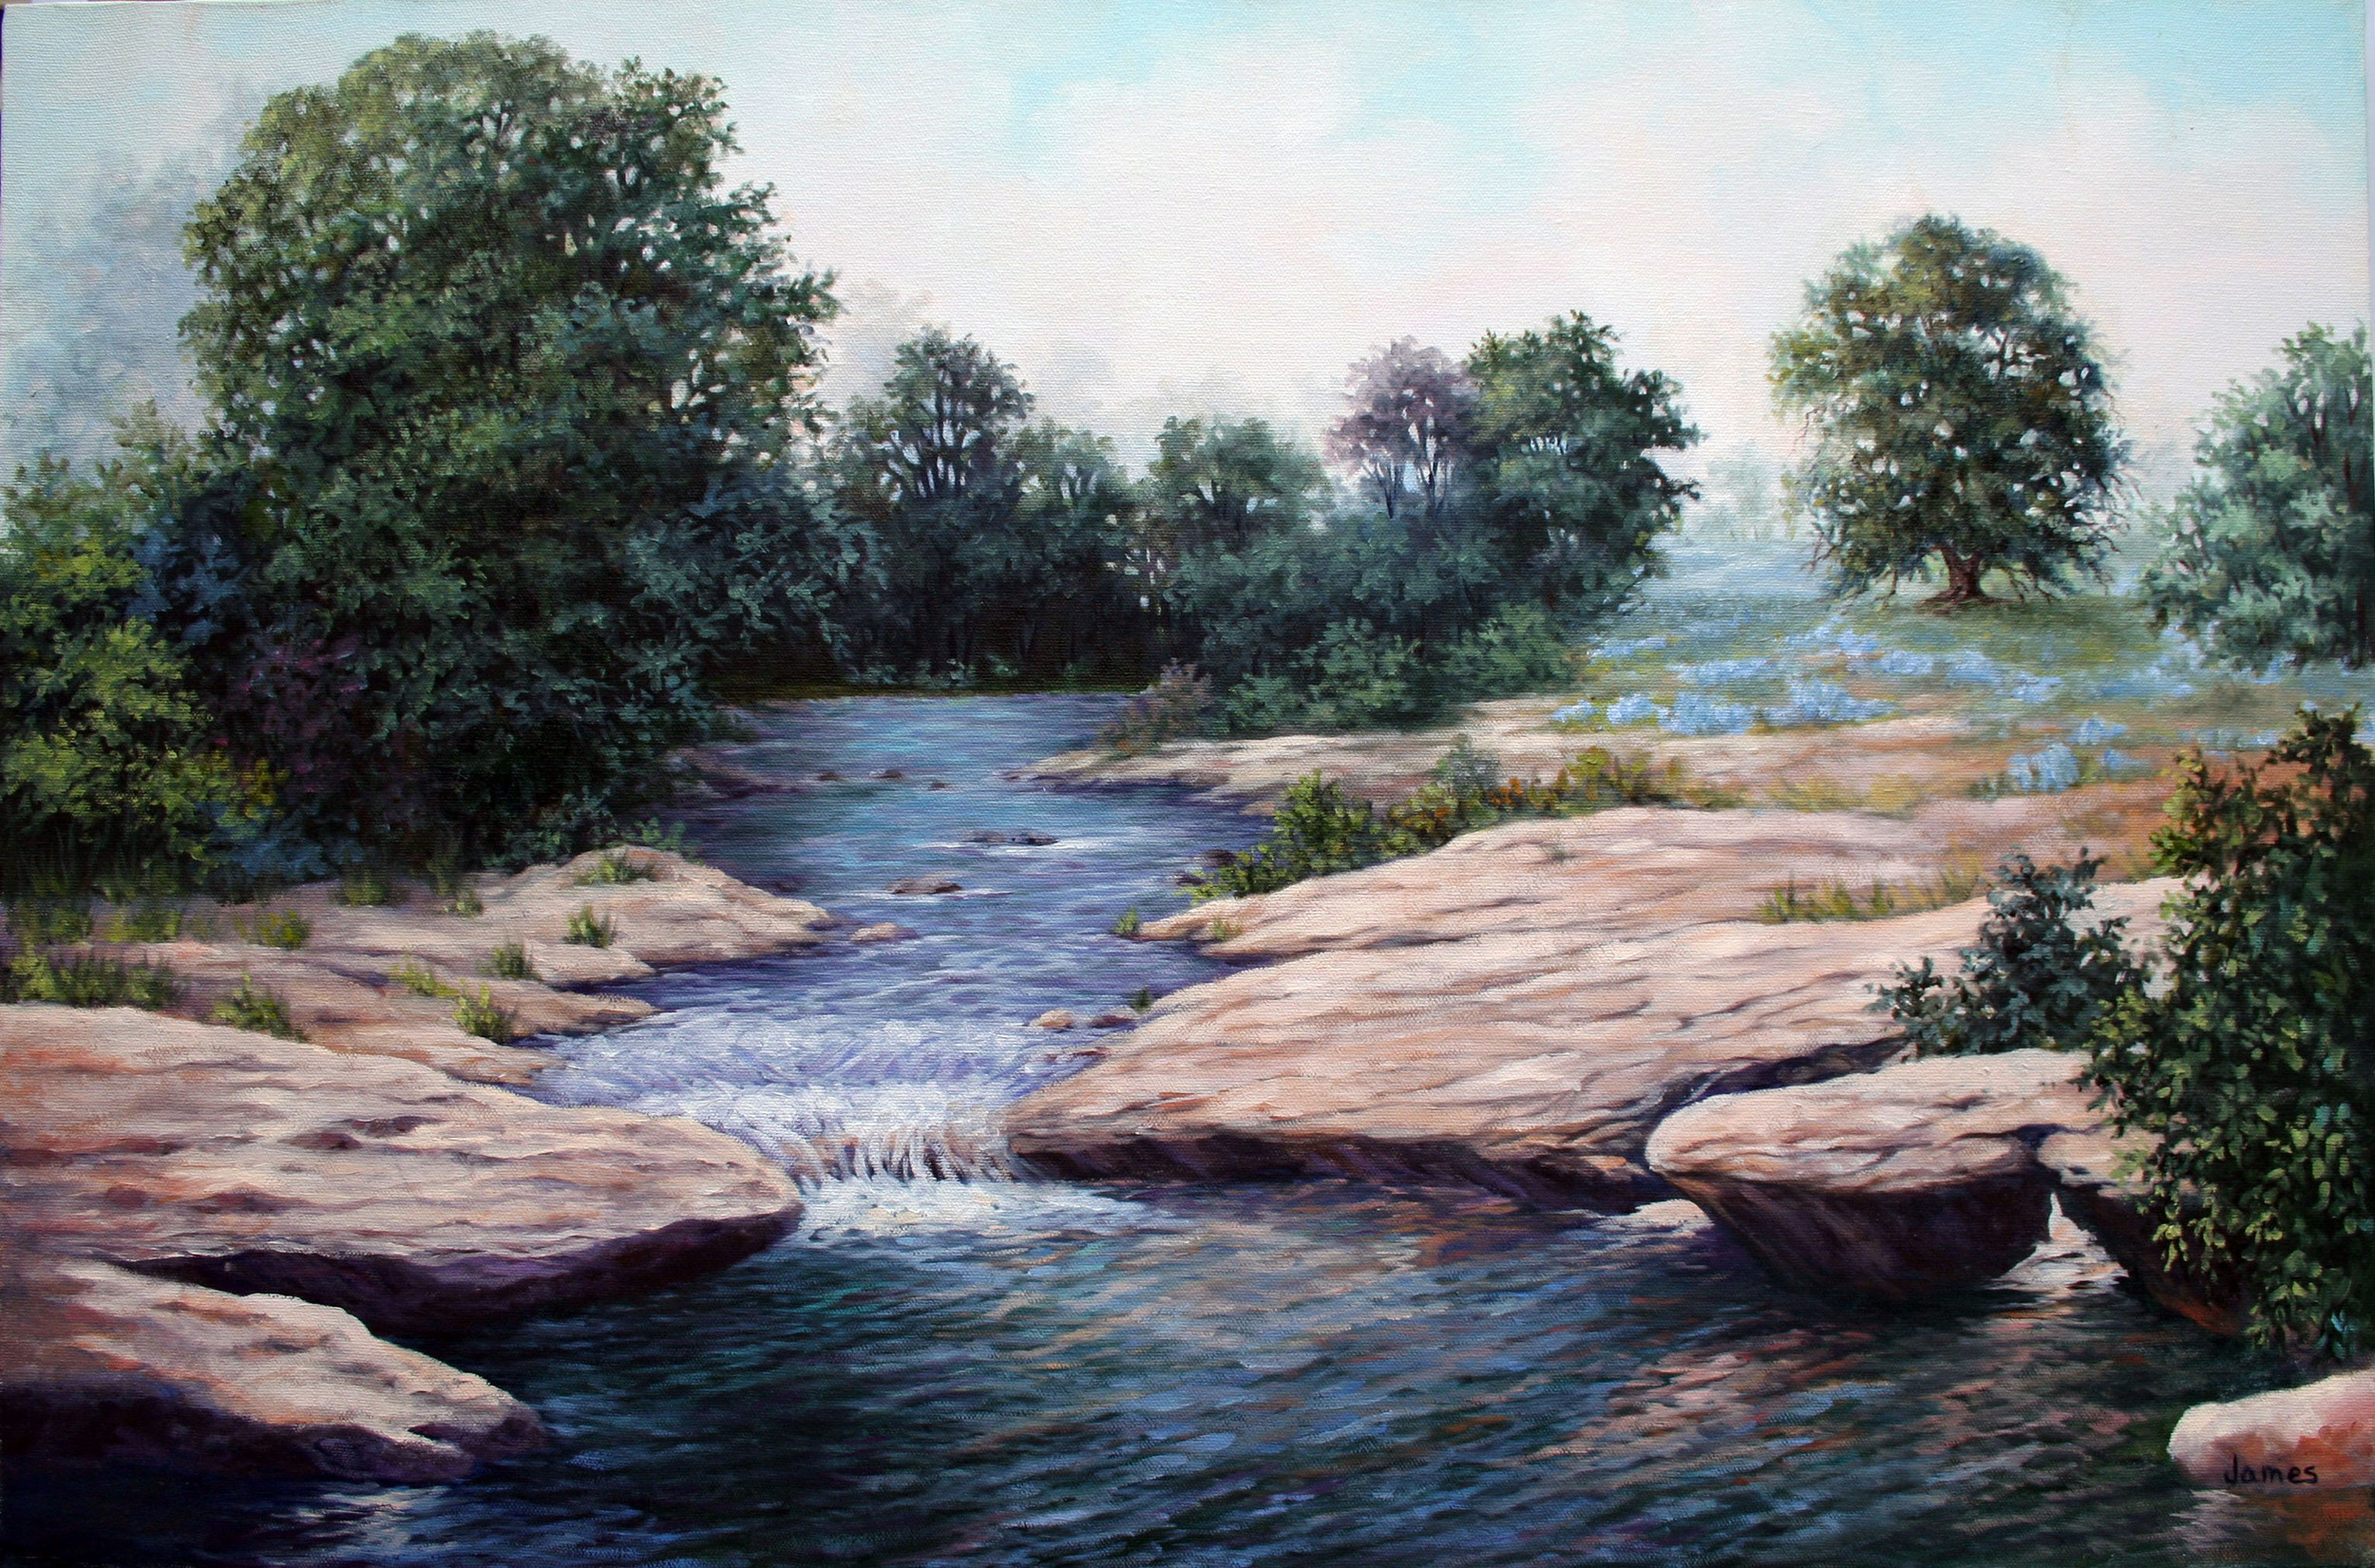 bettyjames_hillcountry_20x30_oil.jpg.JPG